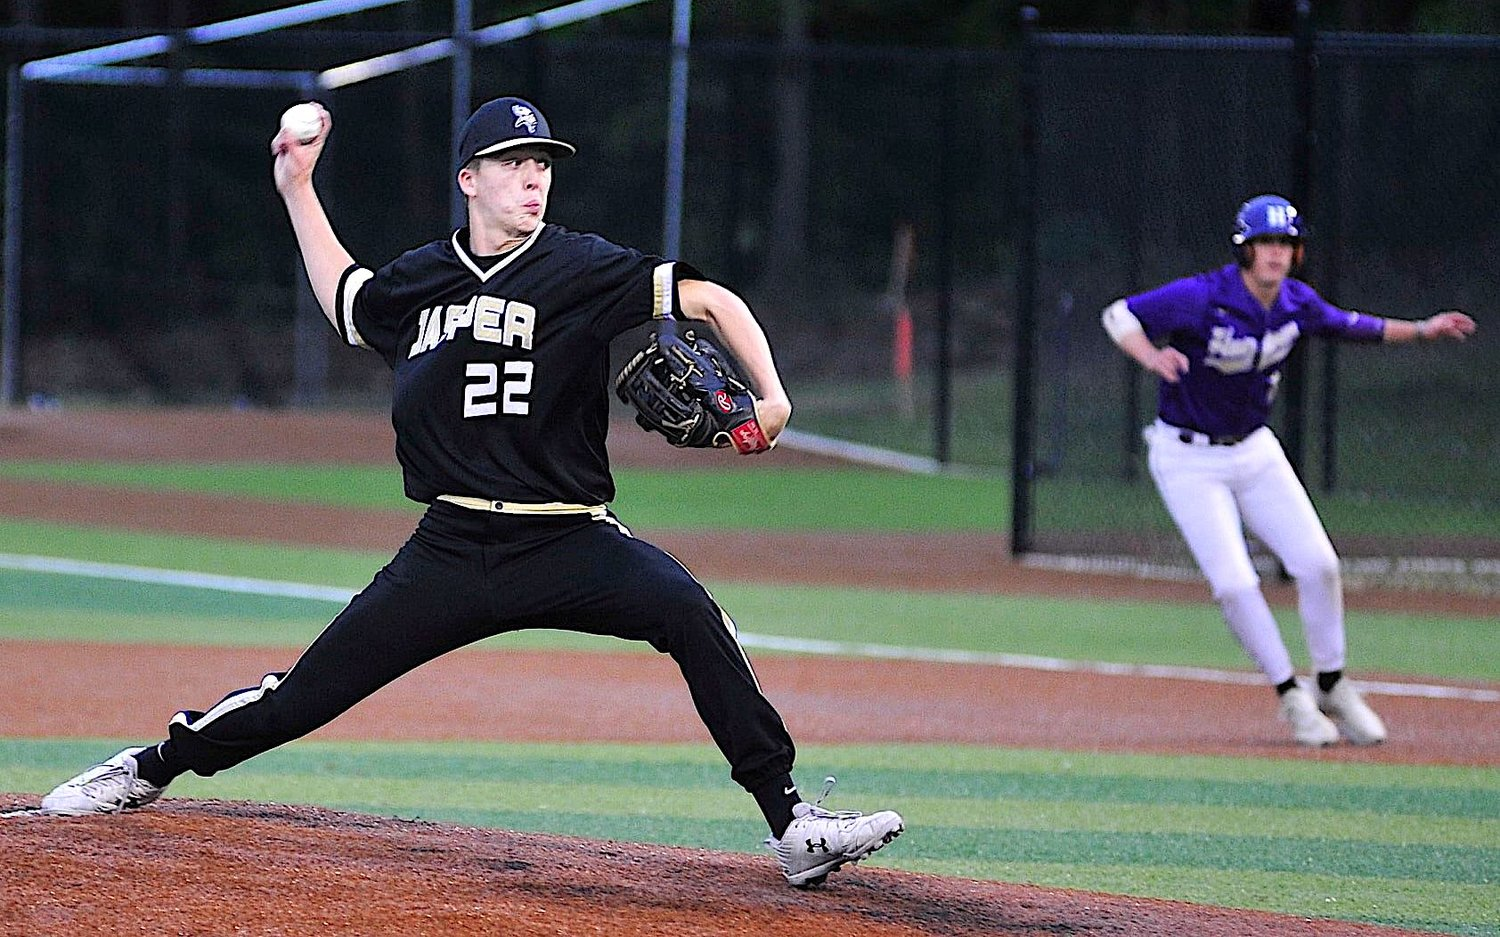 Jasper's Tyler Morrison pitches against Hueytown during game 2 of their double header at Valley Park on Friday.